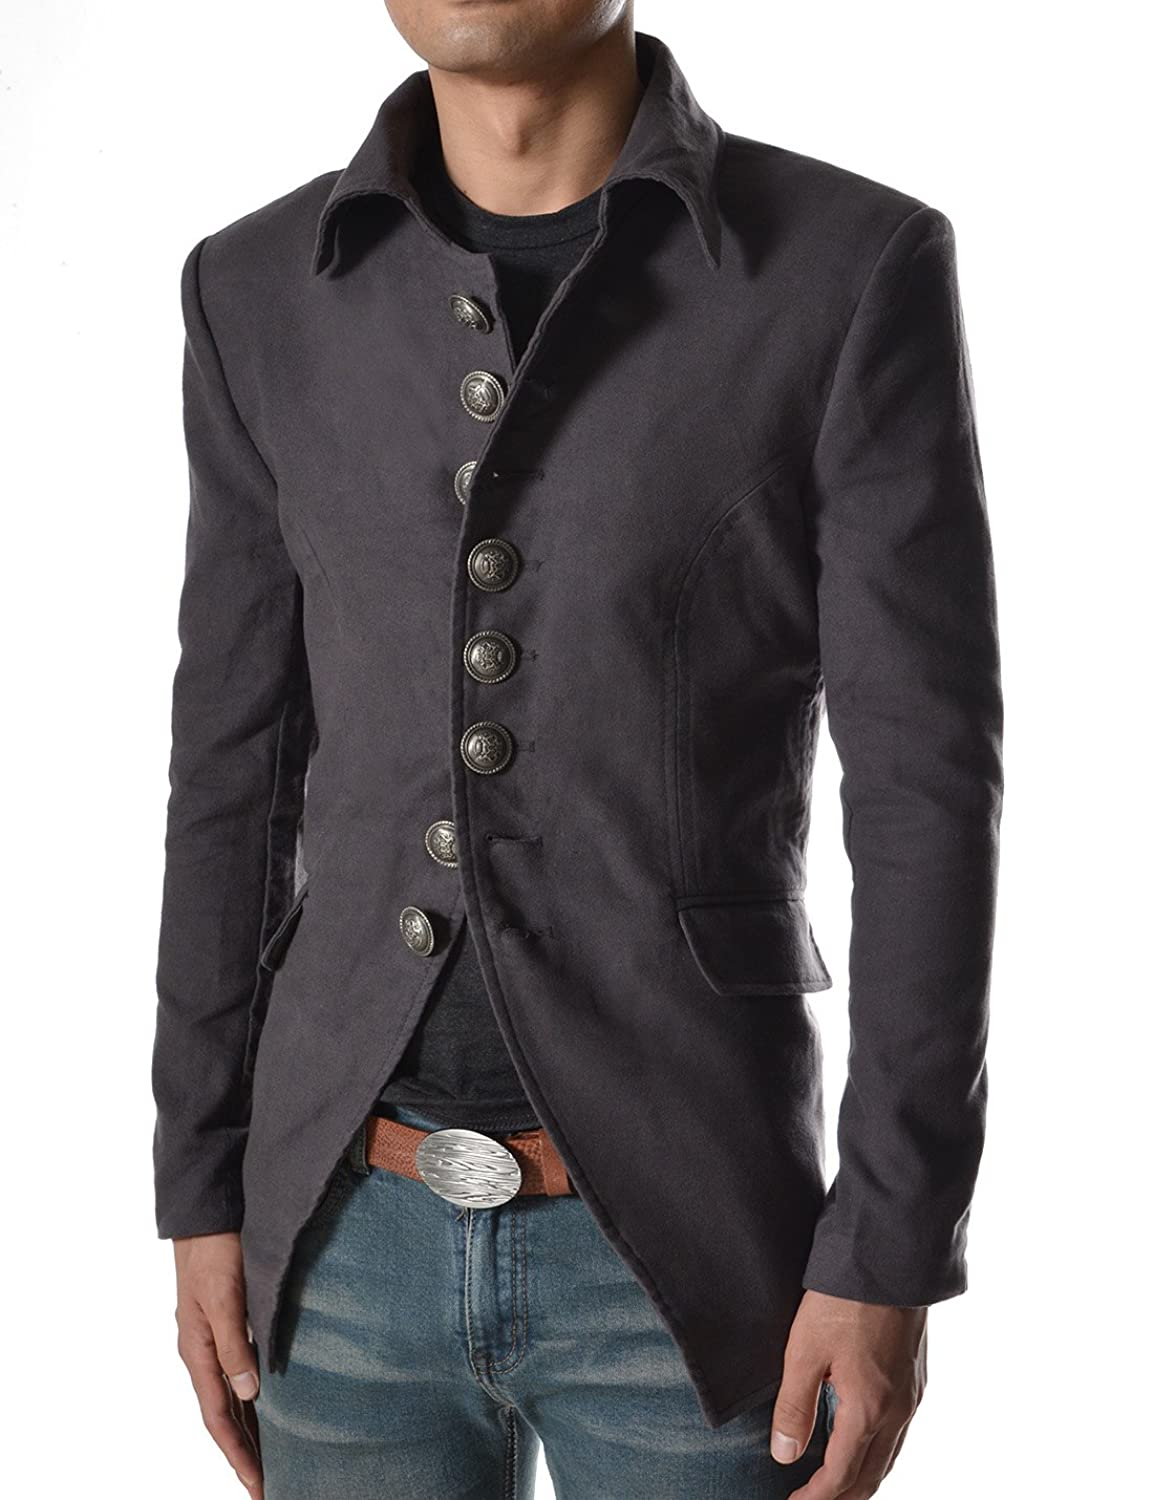 Men's Steampunk Clothing, Costumes, Fashion 737 THELEES Mens Luxury UNIQUE Style Slim fit 8 Button Front Blazer Jacket $59.50 AT vintagedancer.com